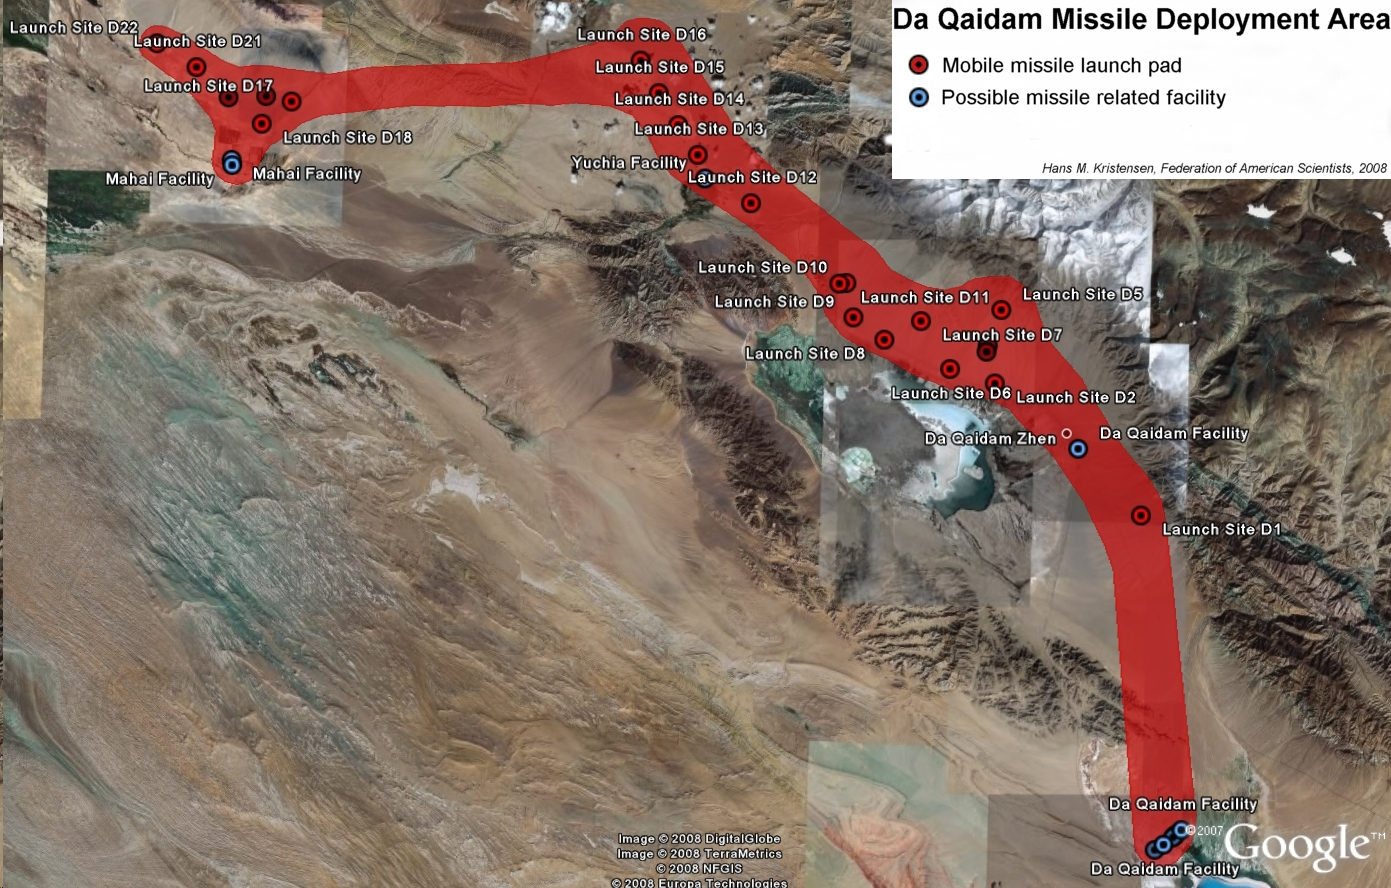 22 Launch Pads Have Been Identified Northwest Of Da Qaidam Click On Image For Full Size